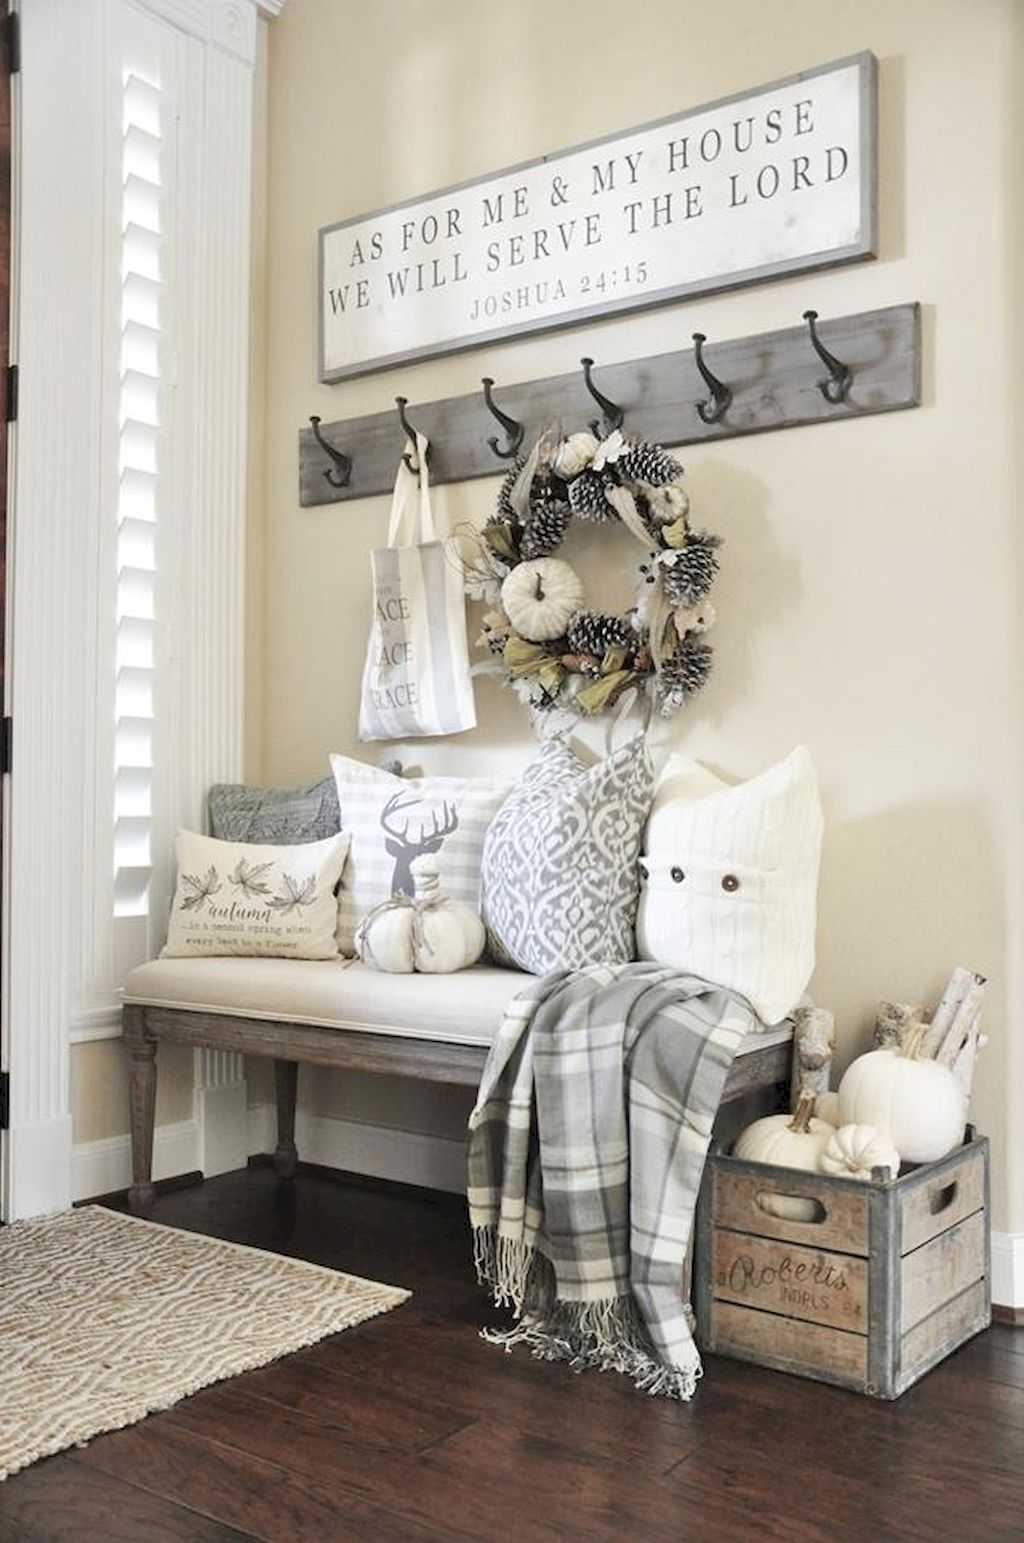 Farmhouse Addition Home Design Ideas Pictures Remodel And Decor: Home Decor, Rustic Farmhouse Entryway, Cheap Home